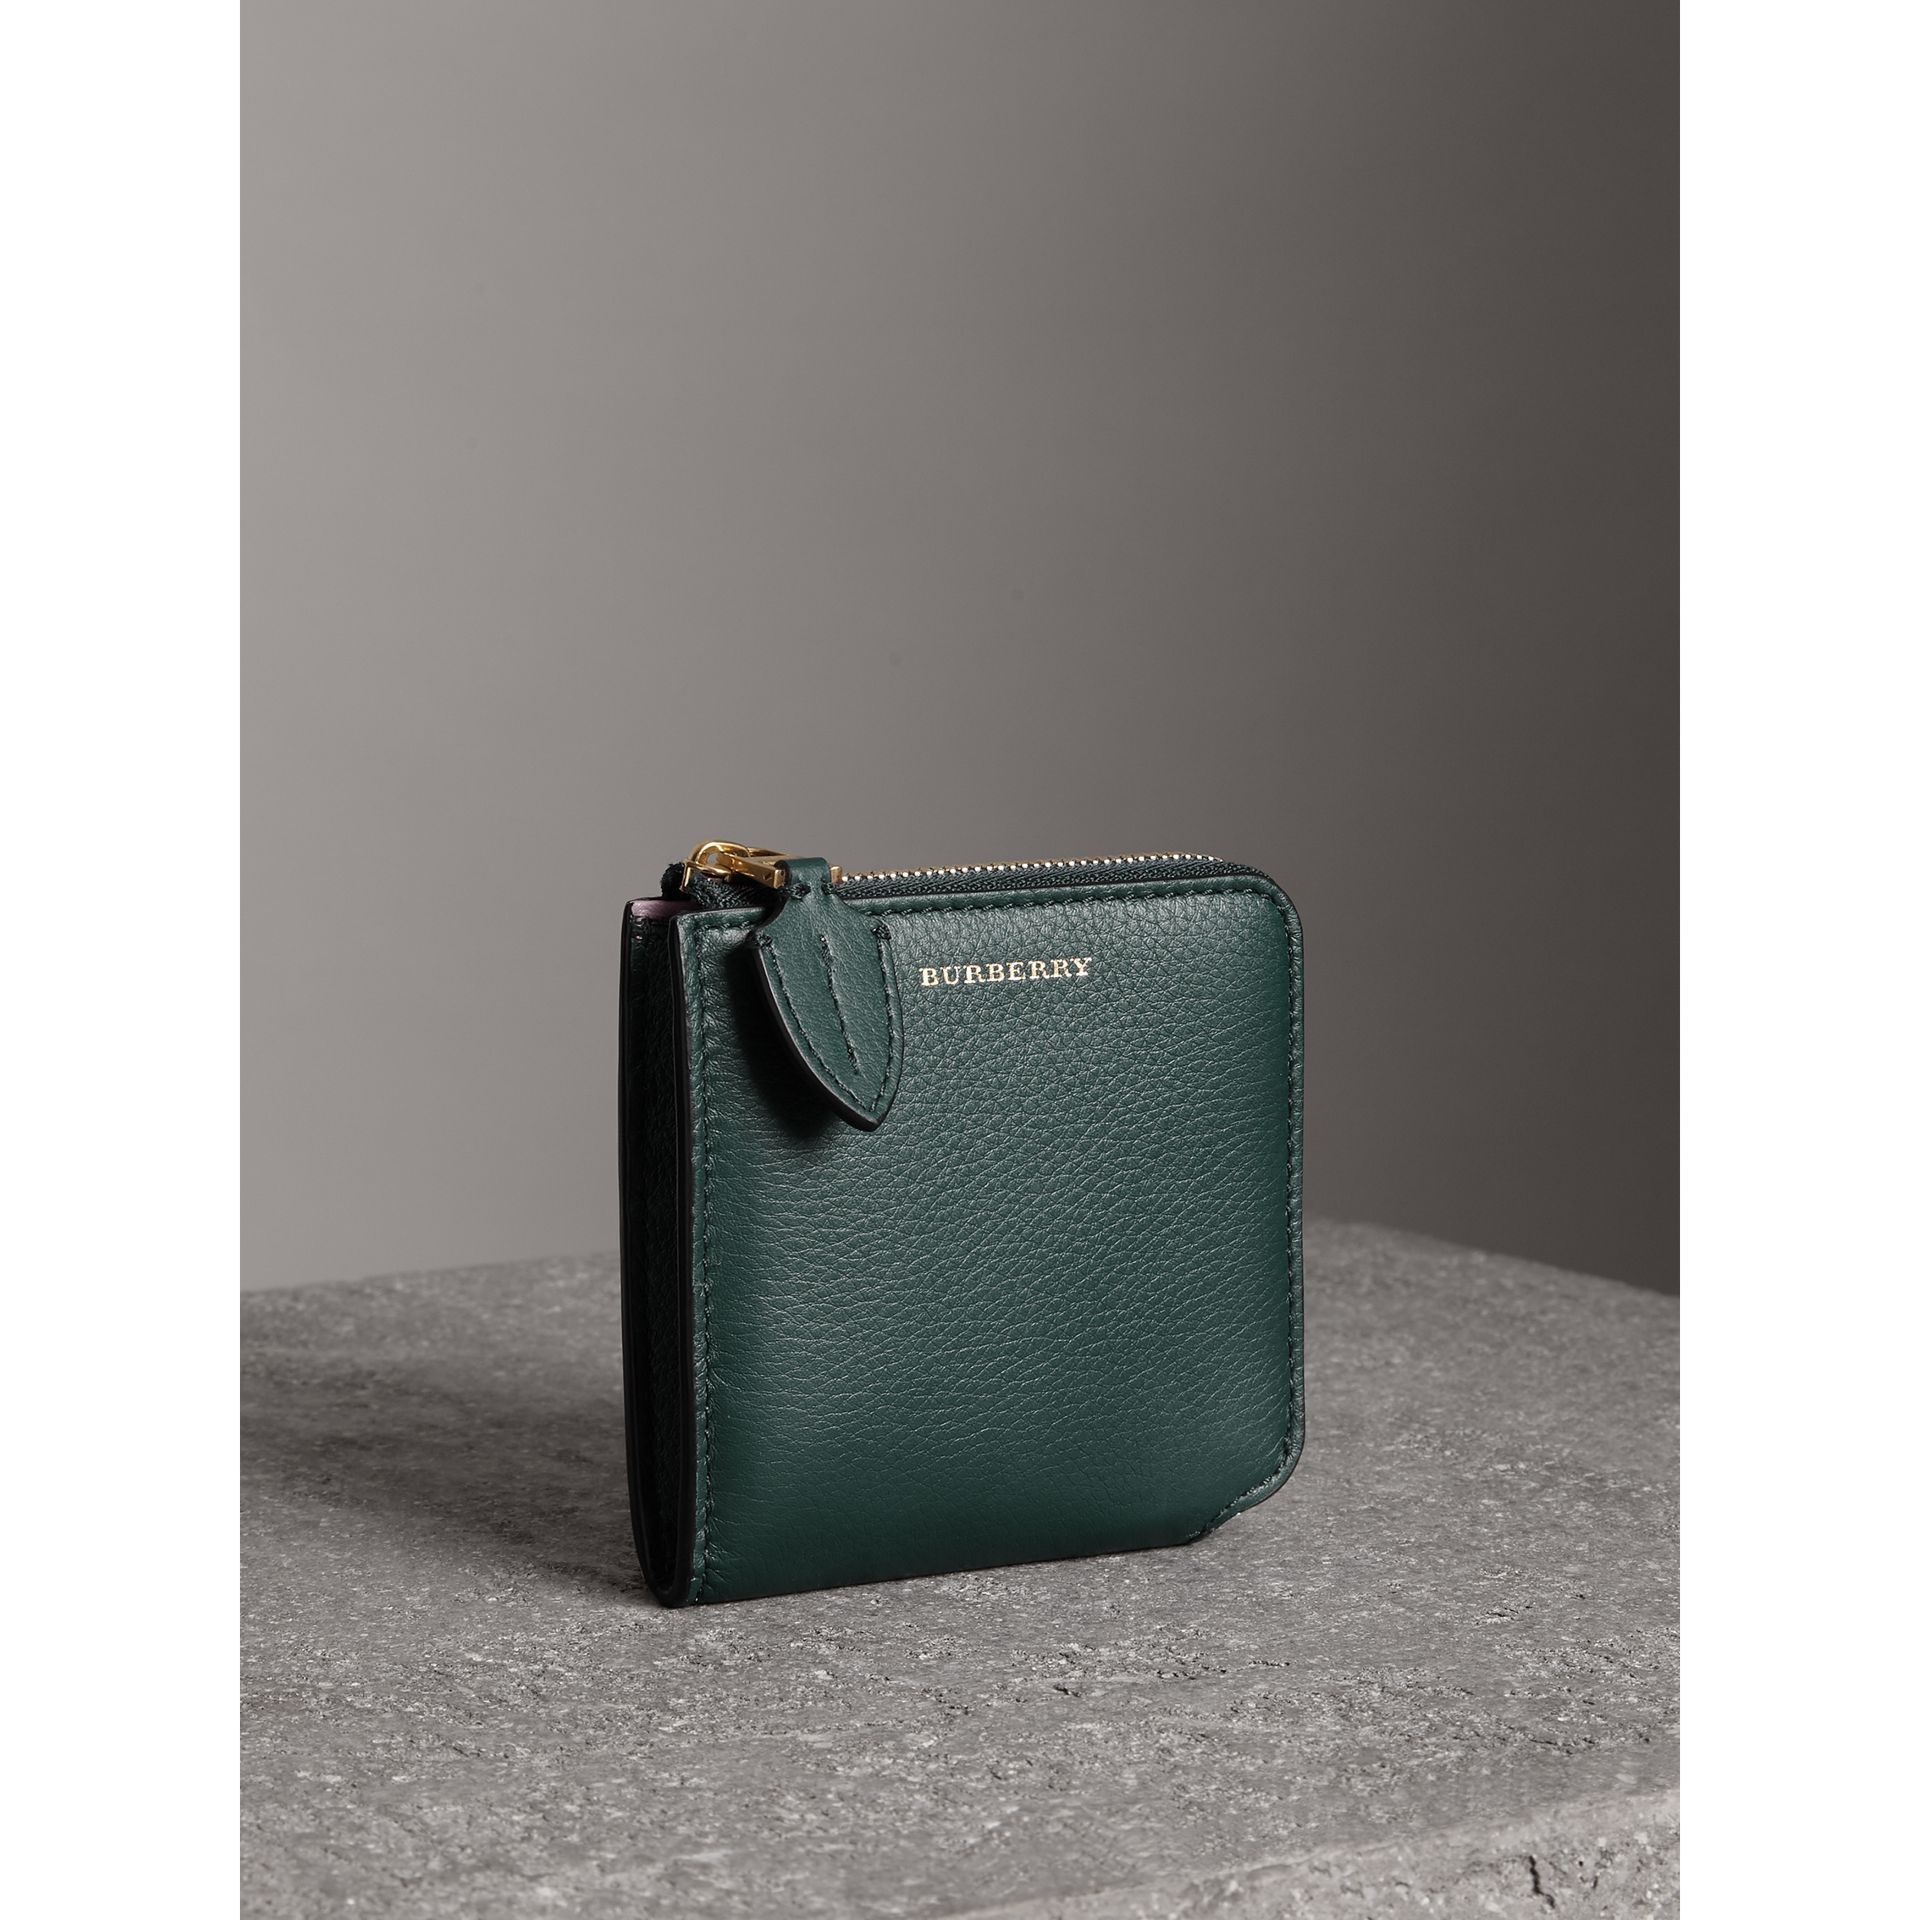 Grainy Leather Square Ziparound Wallet in Dark Cyan - Women | Burberry - gallery image 4